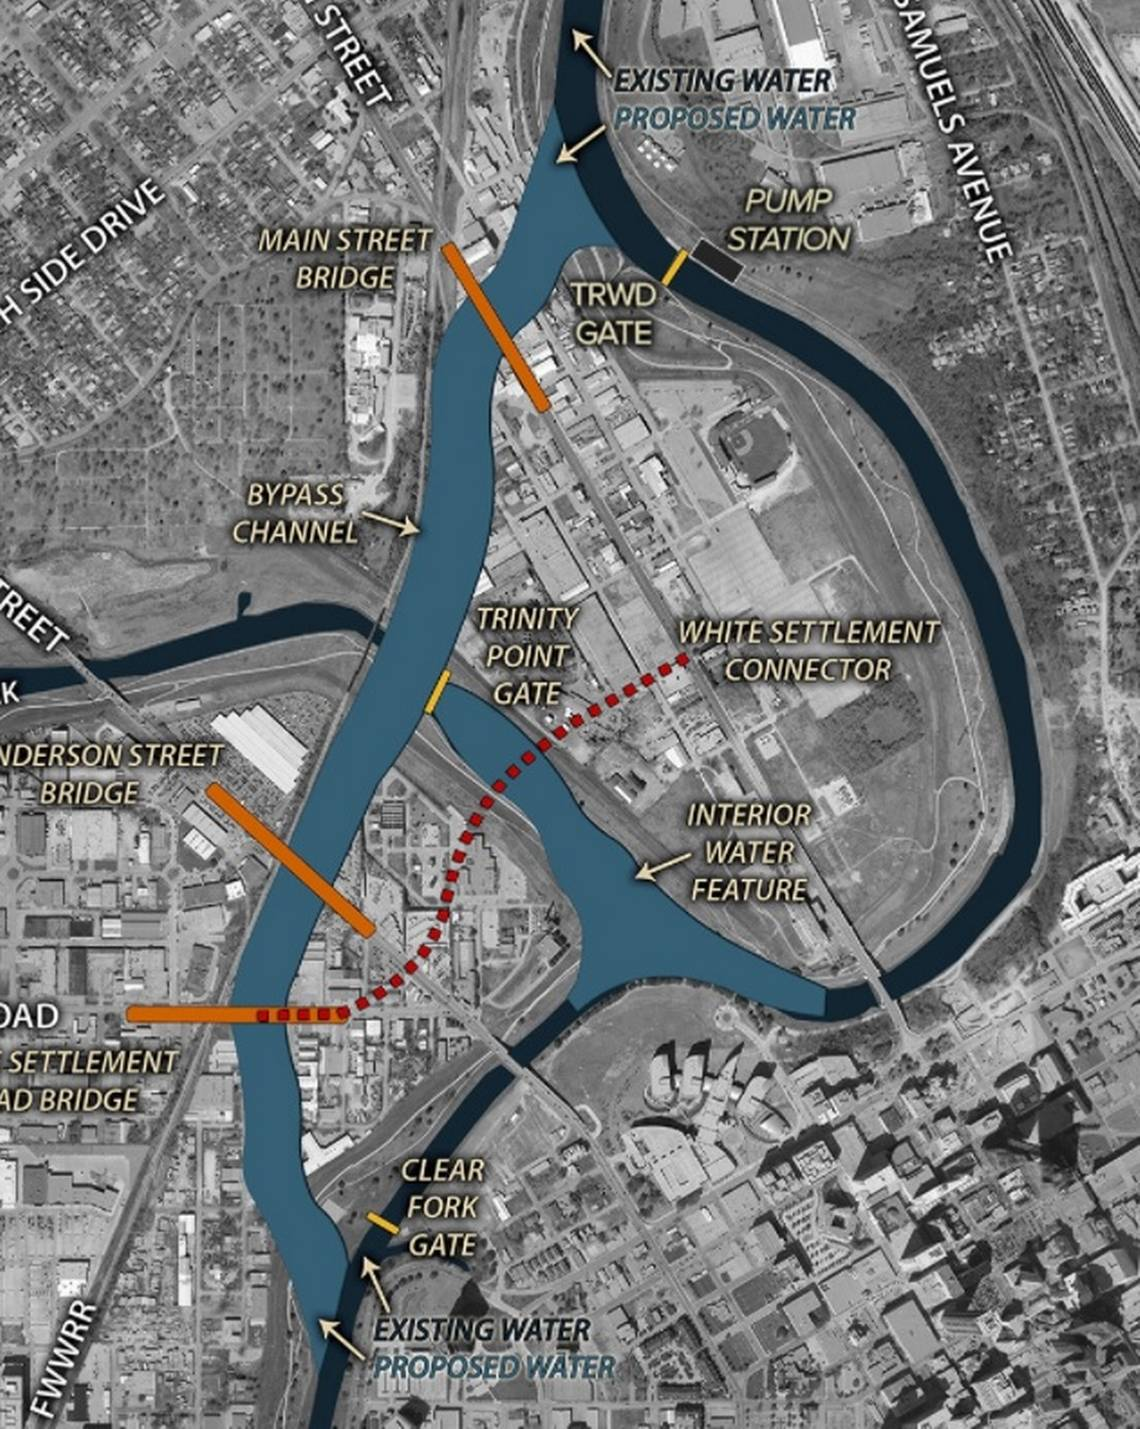 This map shows the route of the bypass channel that would create Panther Island, just north of downtown Fort Worth. Image: Panther Island/Central City Flood Project